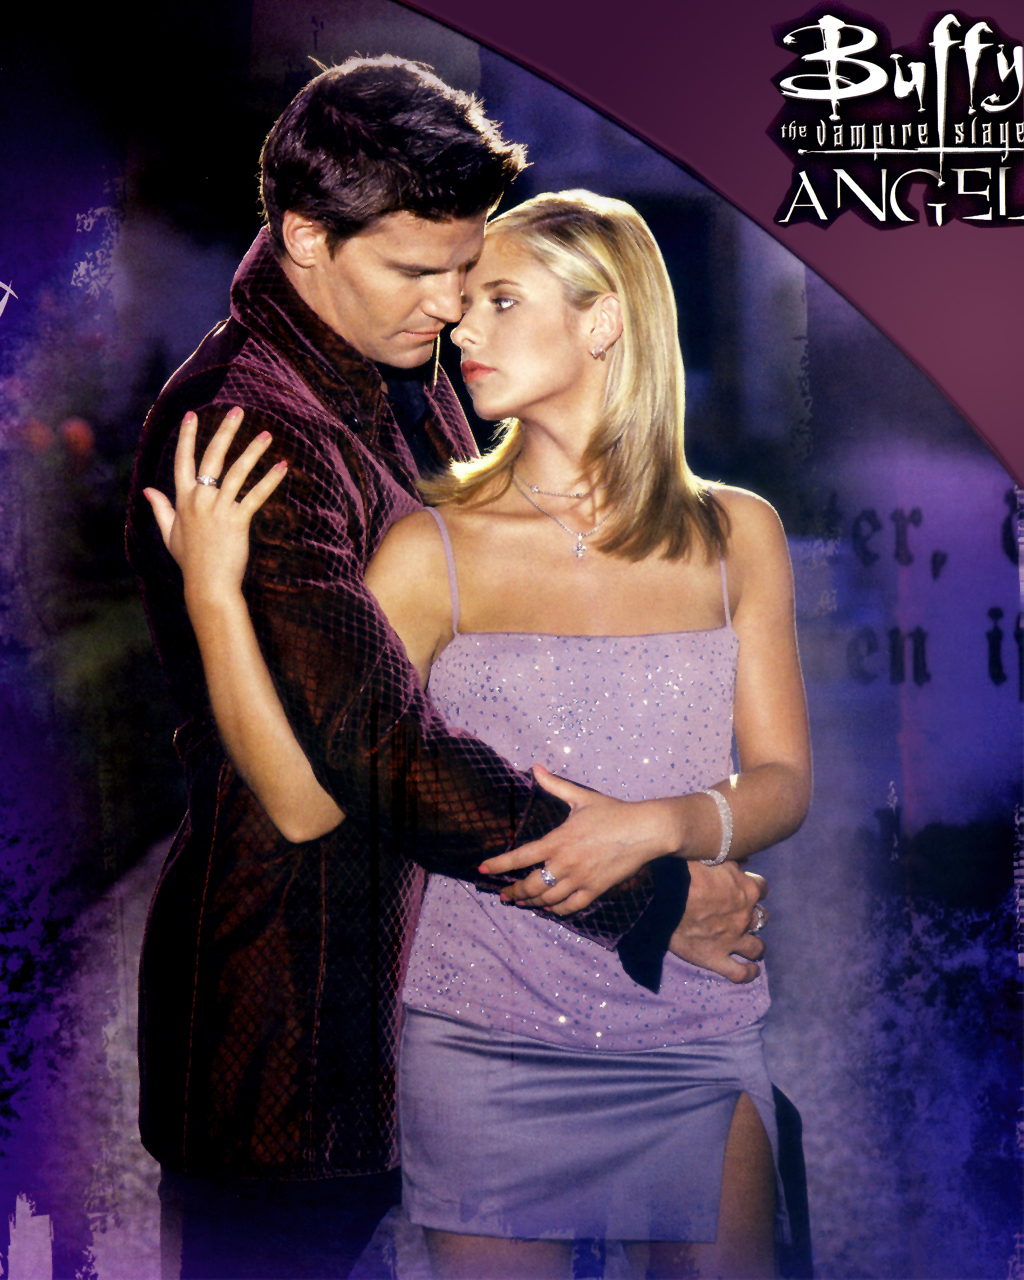 http://images1.fanpop.com/images/photos/2100000/01-Angel-Buffy-buffy-the-vampire-slayer-2180565-1024-1280.jpg